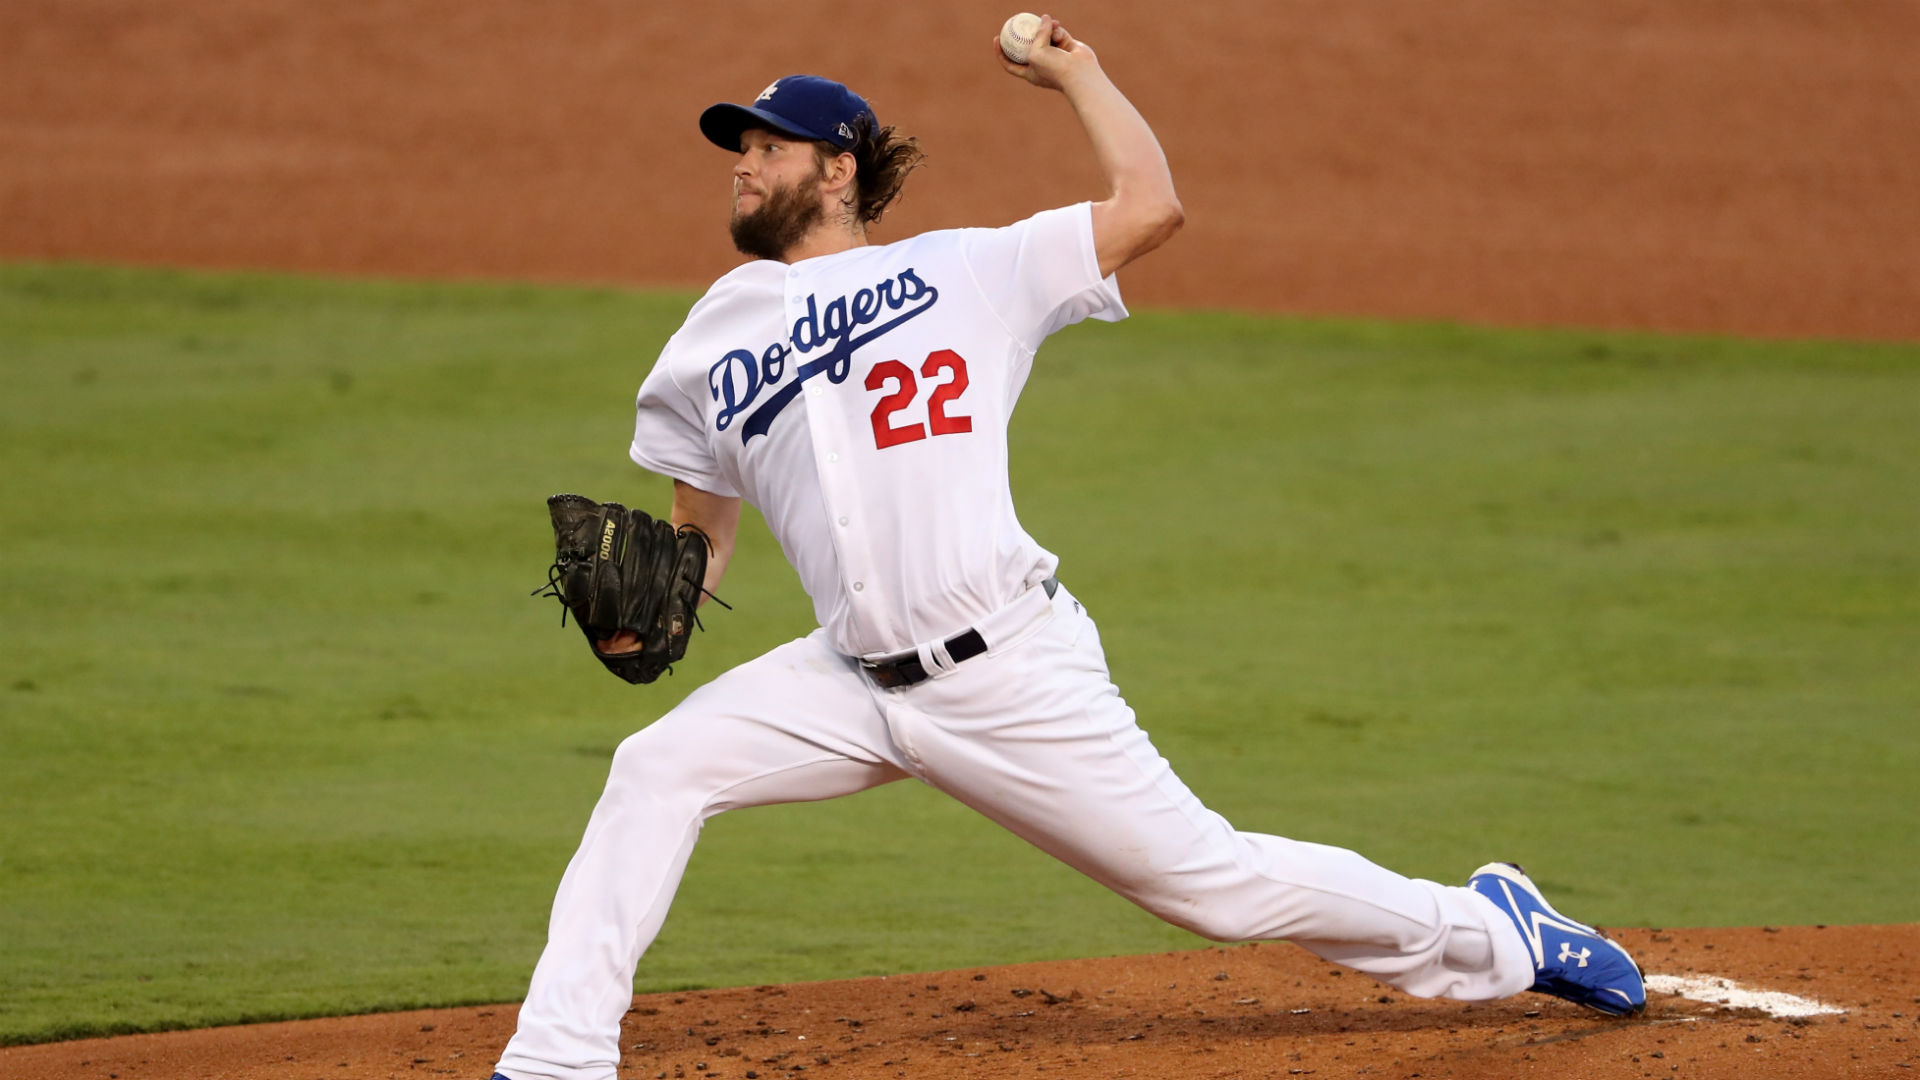 Clayton Kershaw could start Thursday after successful simulated game